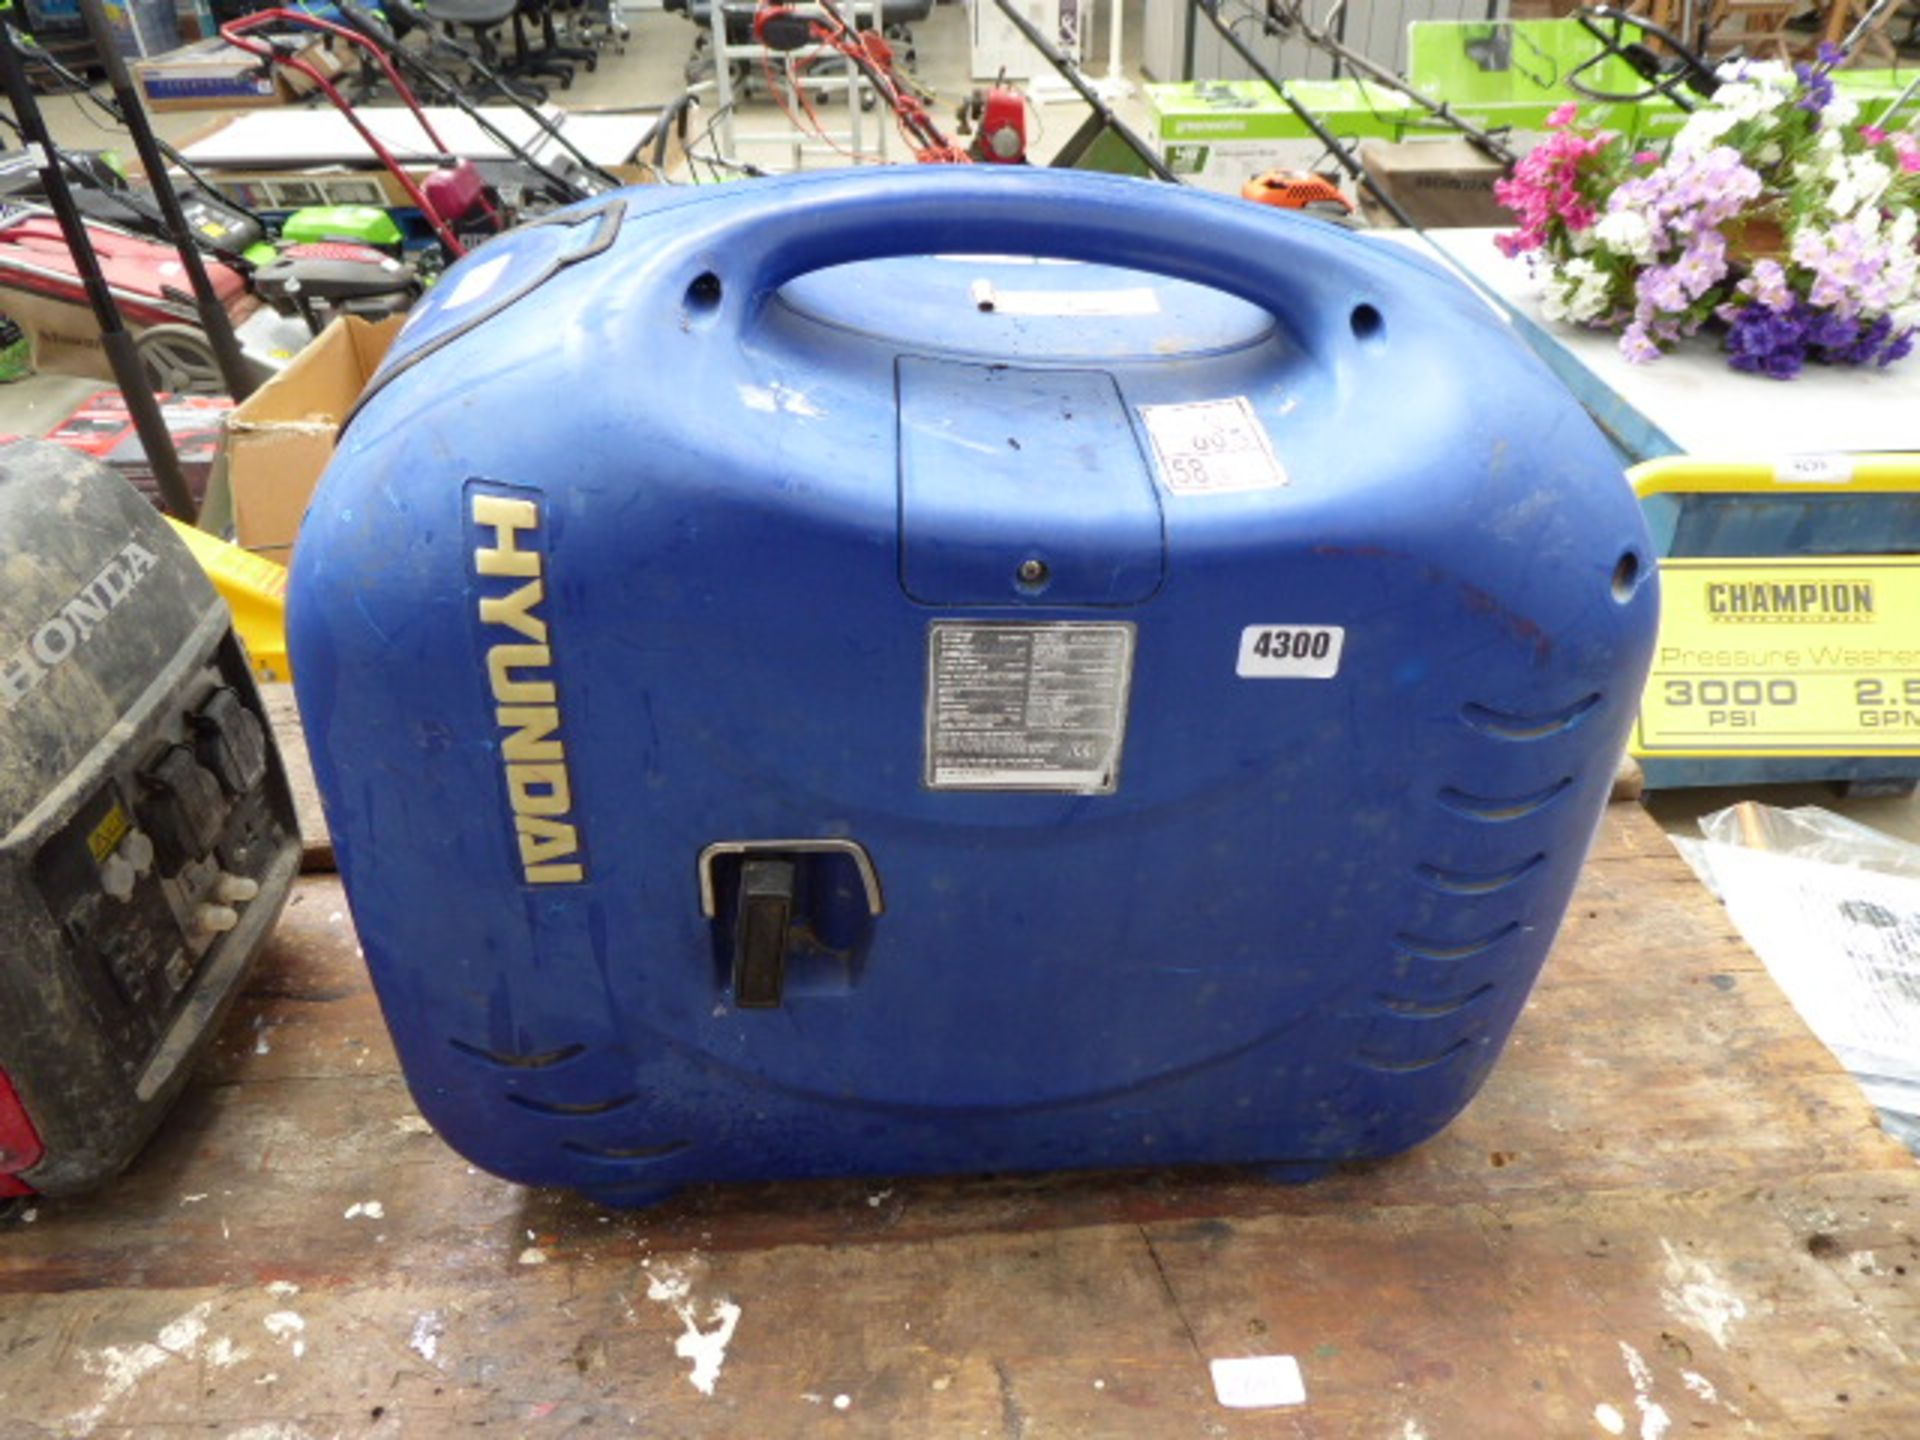 Lot 4300 - Hyundai petrol powered blue generator